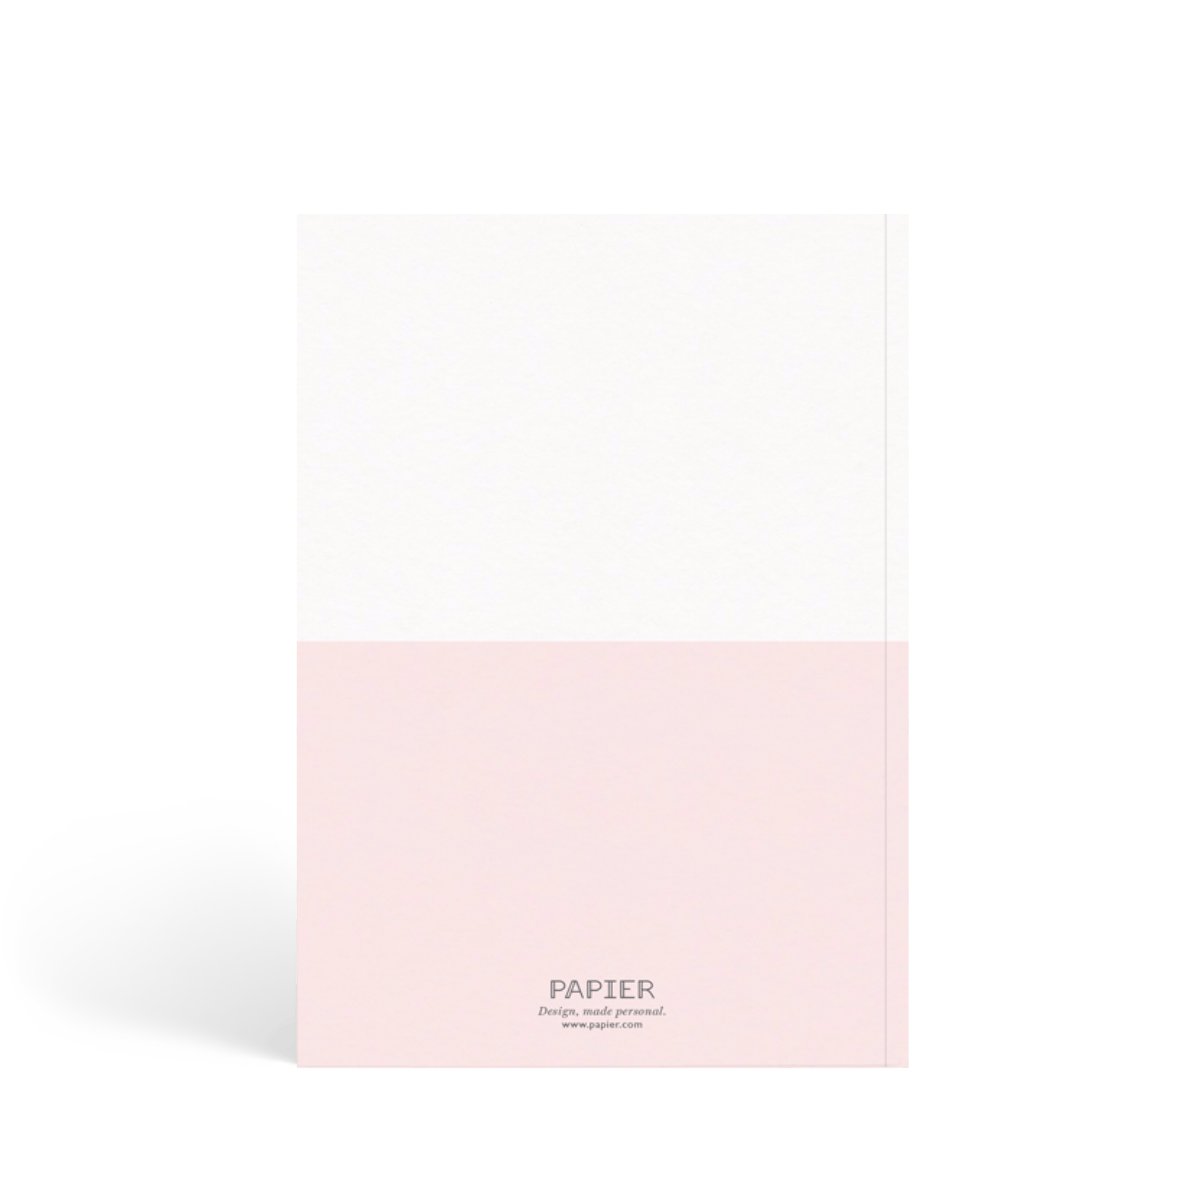 Https%3a%2f%2fwww.papier.com%2fproduct image%2f29800%2f5%2fdemi pink 7513 back 1508761339.png?ixlib=rb 1.1